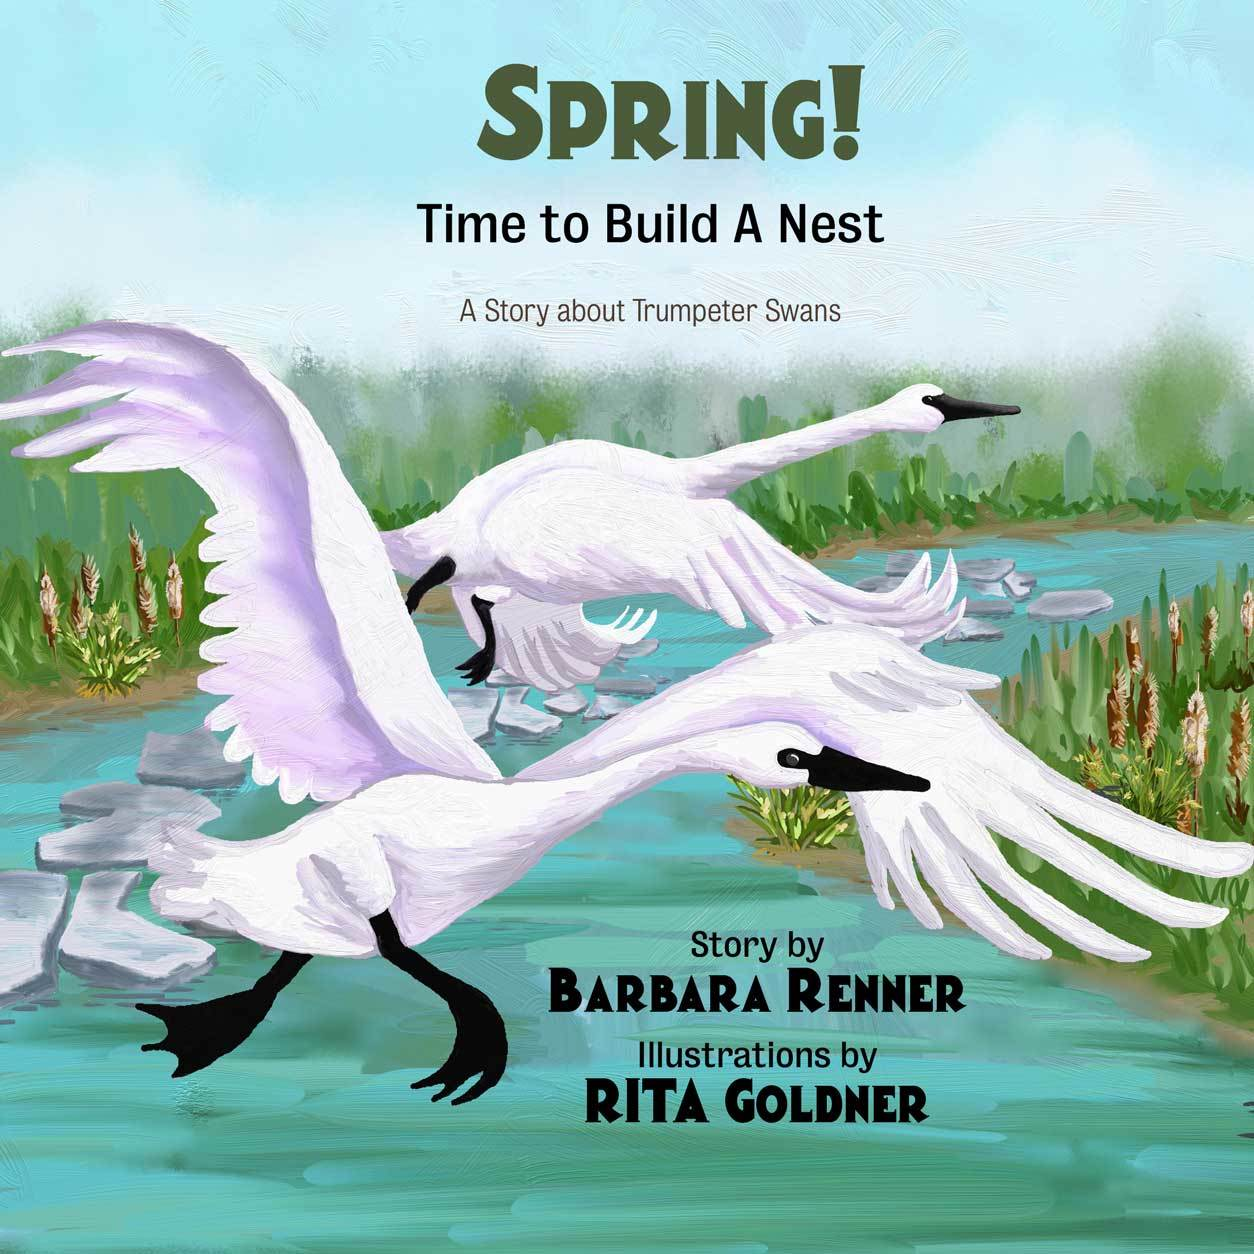 Spring Time to Build a Nest by Barbara Renner